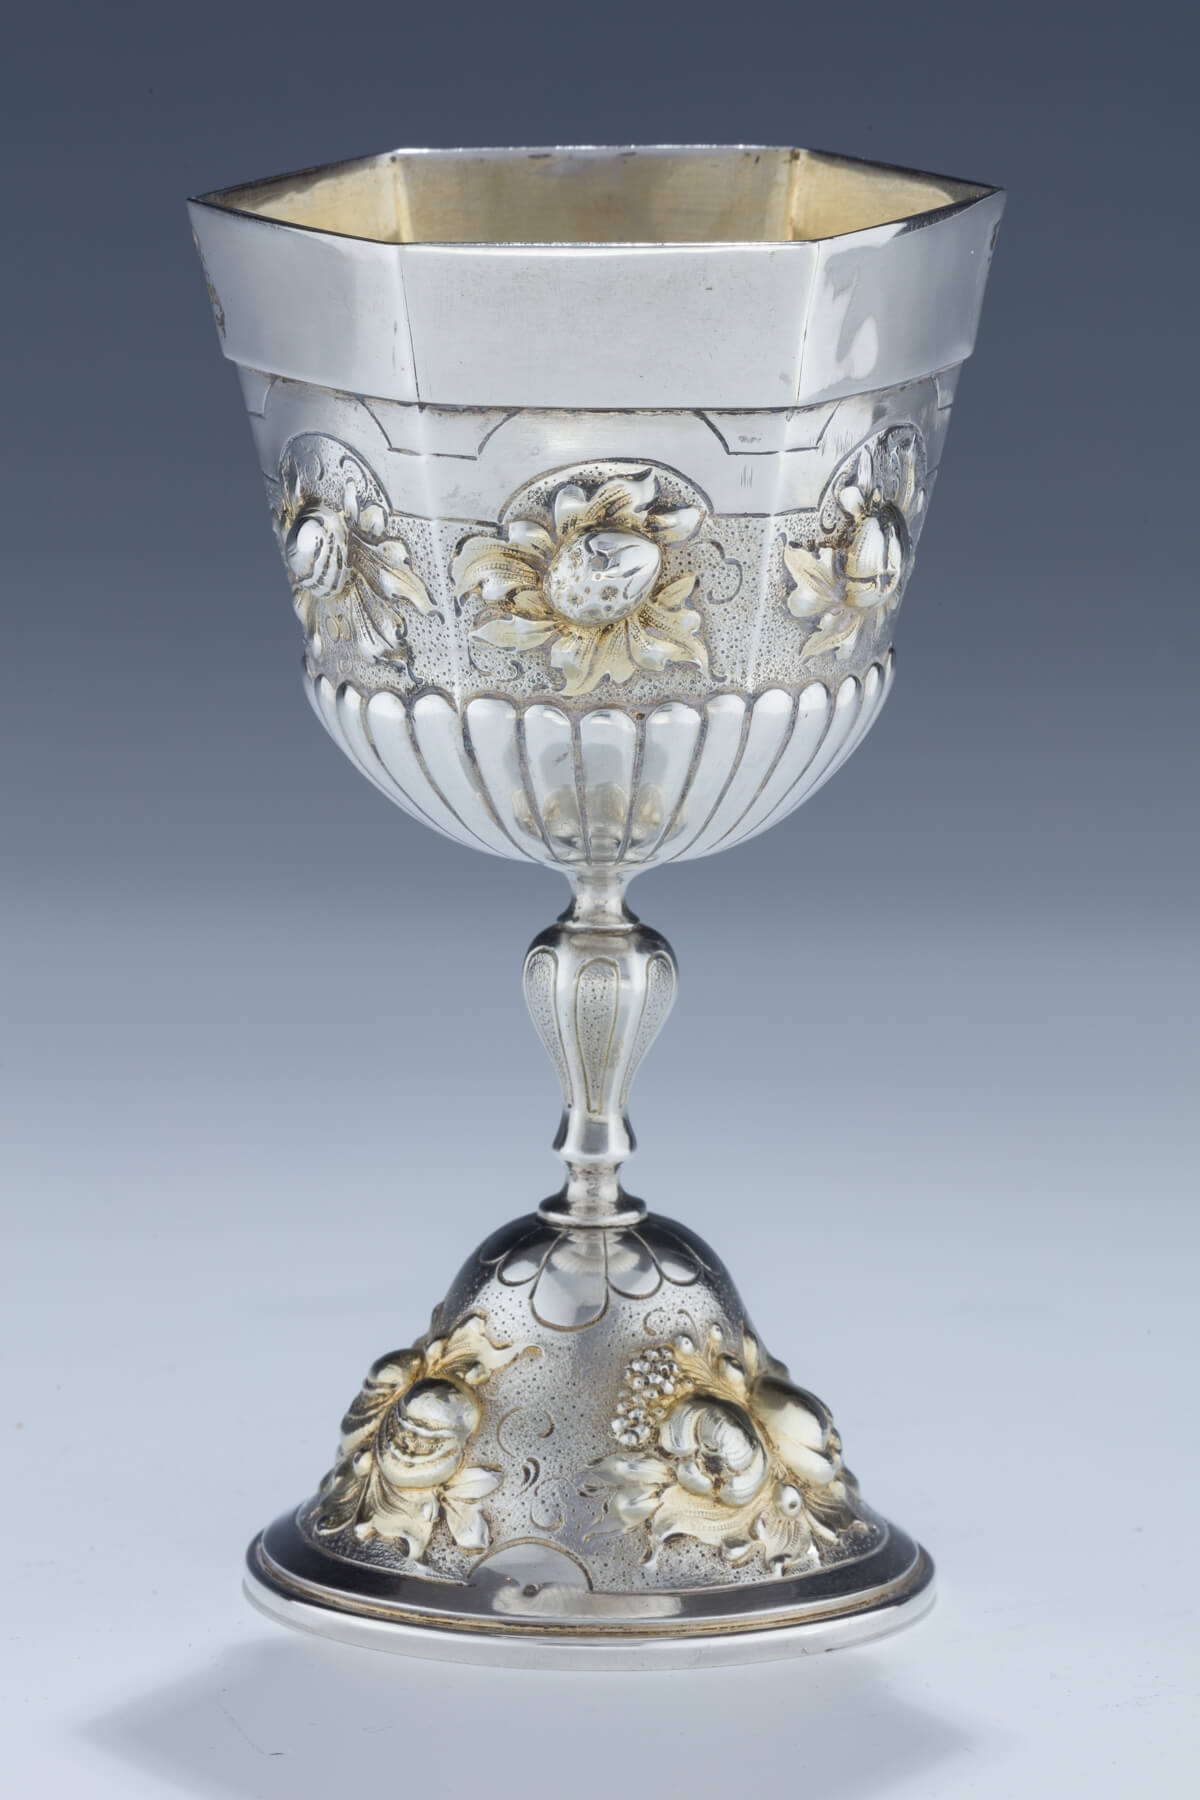 110. A Monumental Silver Kiddush Cup by Lazarus Posen